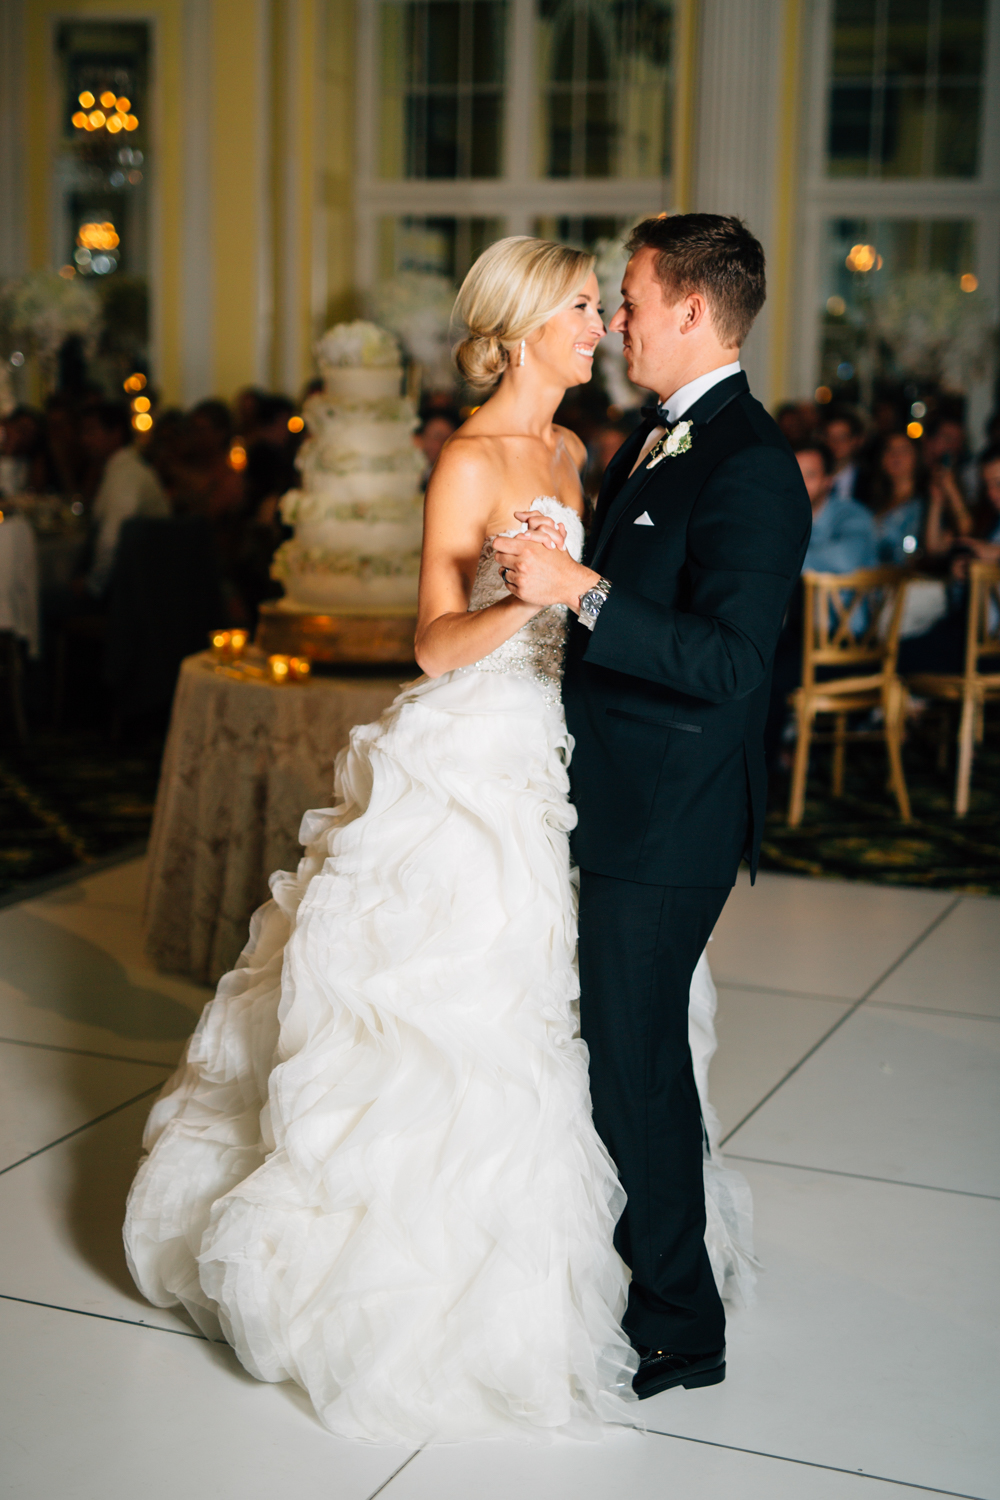 Amway Grand Plaza Cute Photos of Bride and Groom Dancing